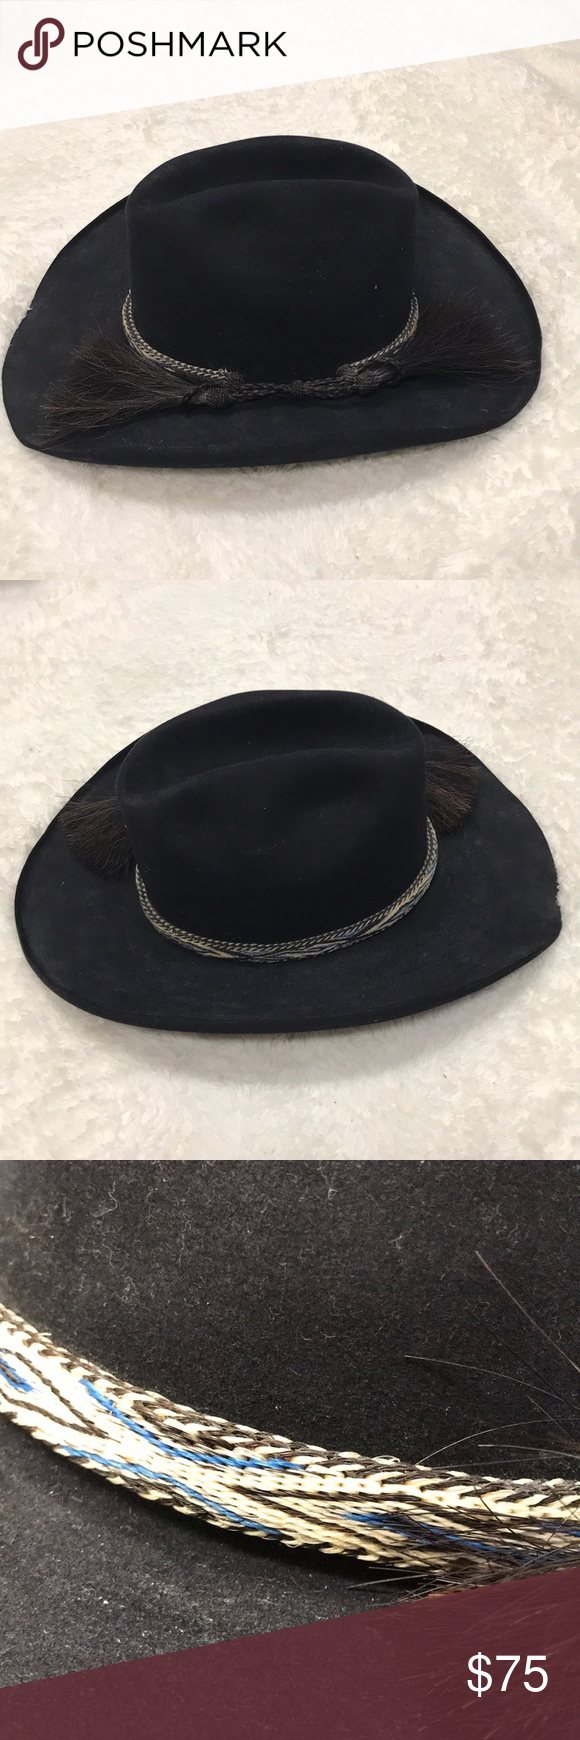 9c542f32fa71b Double H Custom Hat Company hat Double H Custom Hat Company hat in  excellent condition Double H Accessories Hats